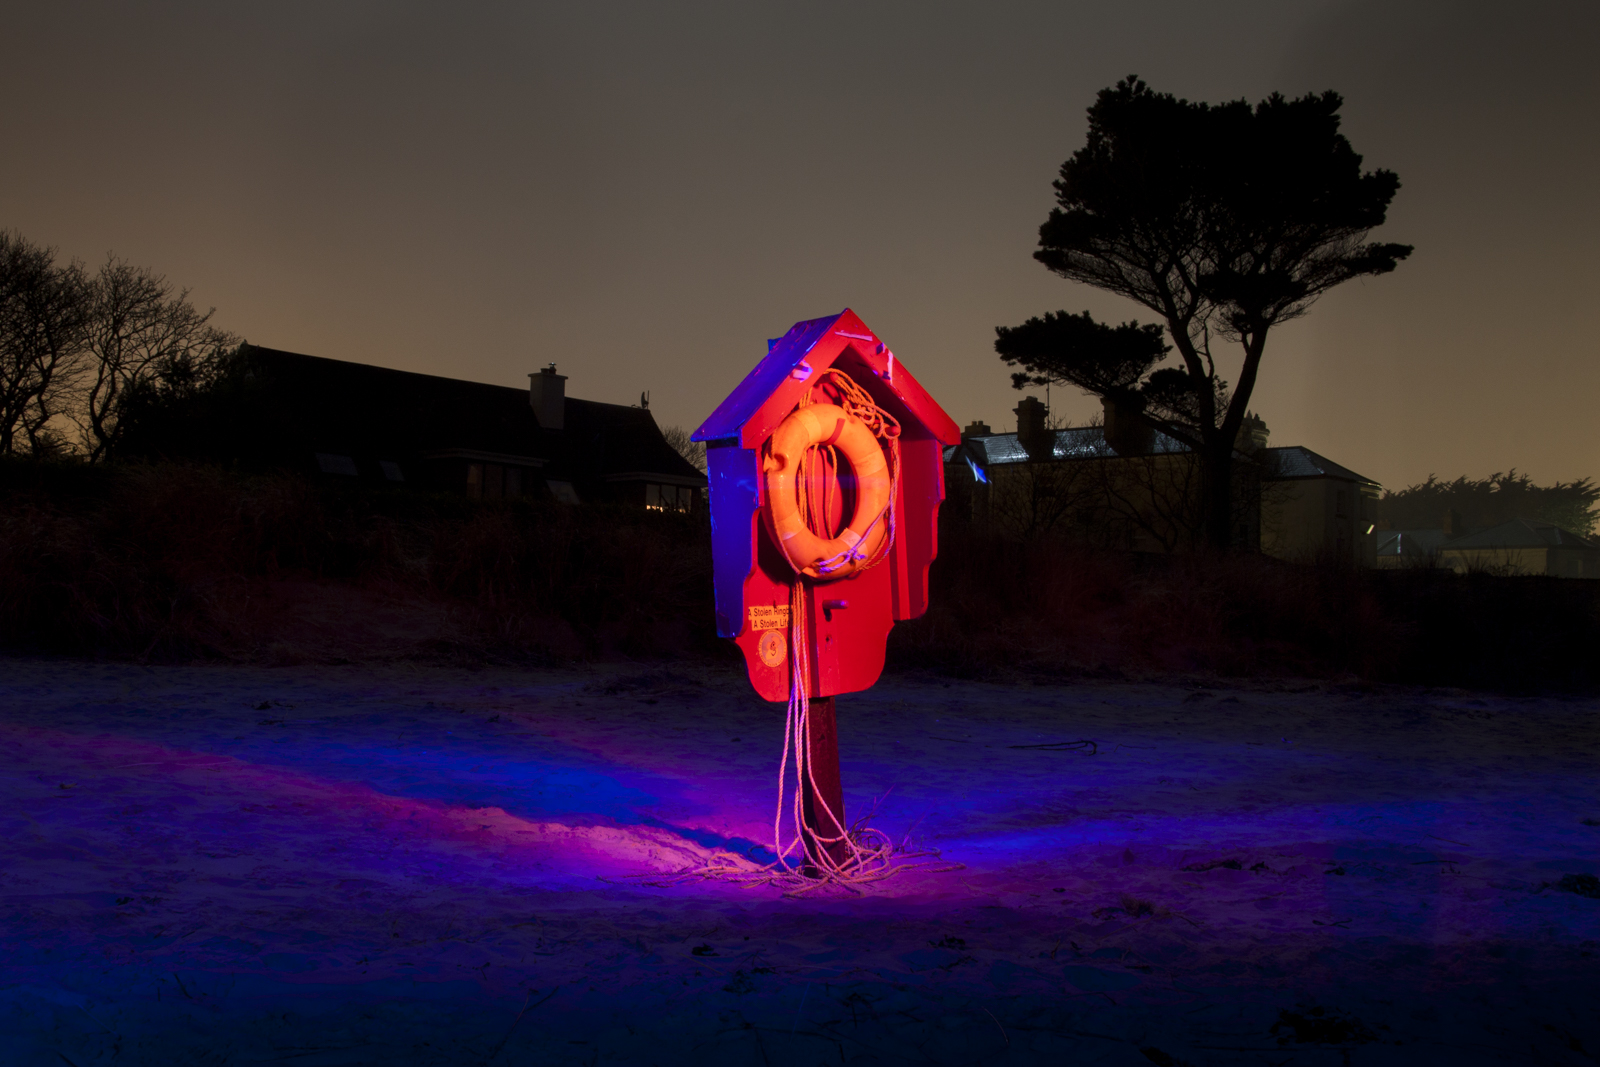 Karl Leonard, Chroma by night #2: Lifebuoy